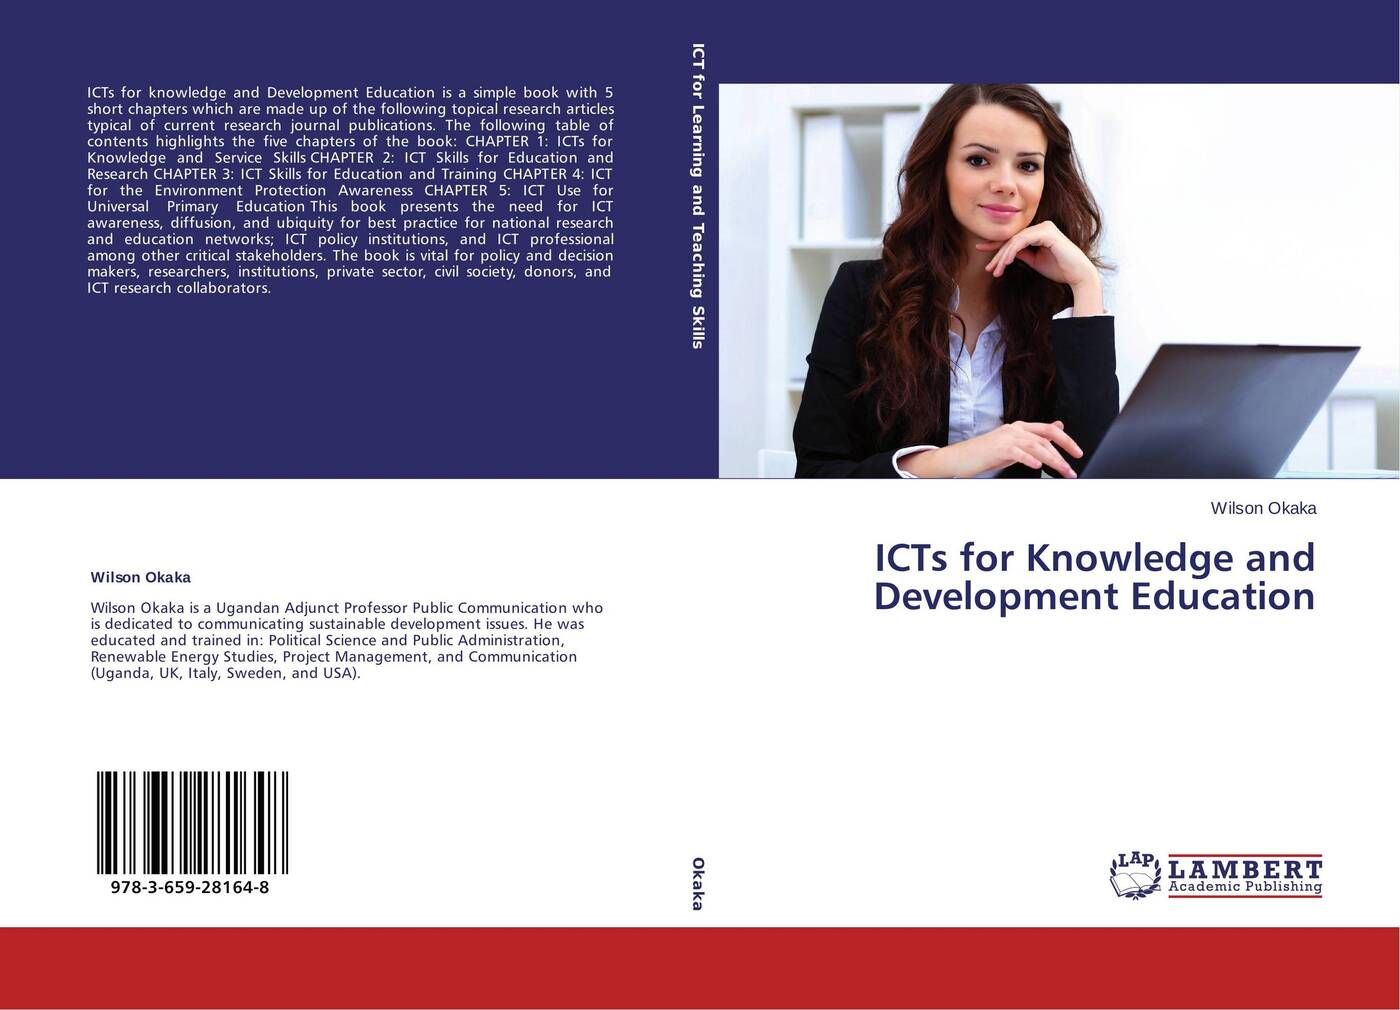 Wilson Okaka ICTs for Knowledge and Development Education knowledge to policy making the most of development research